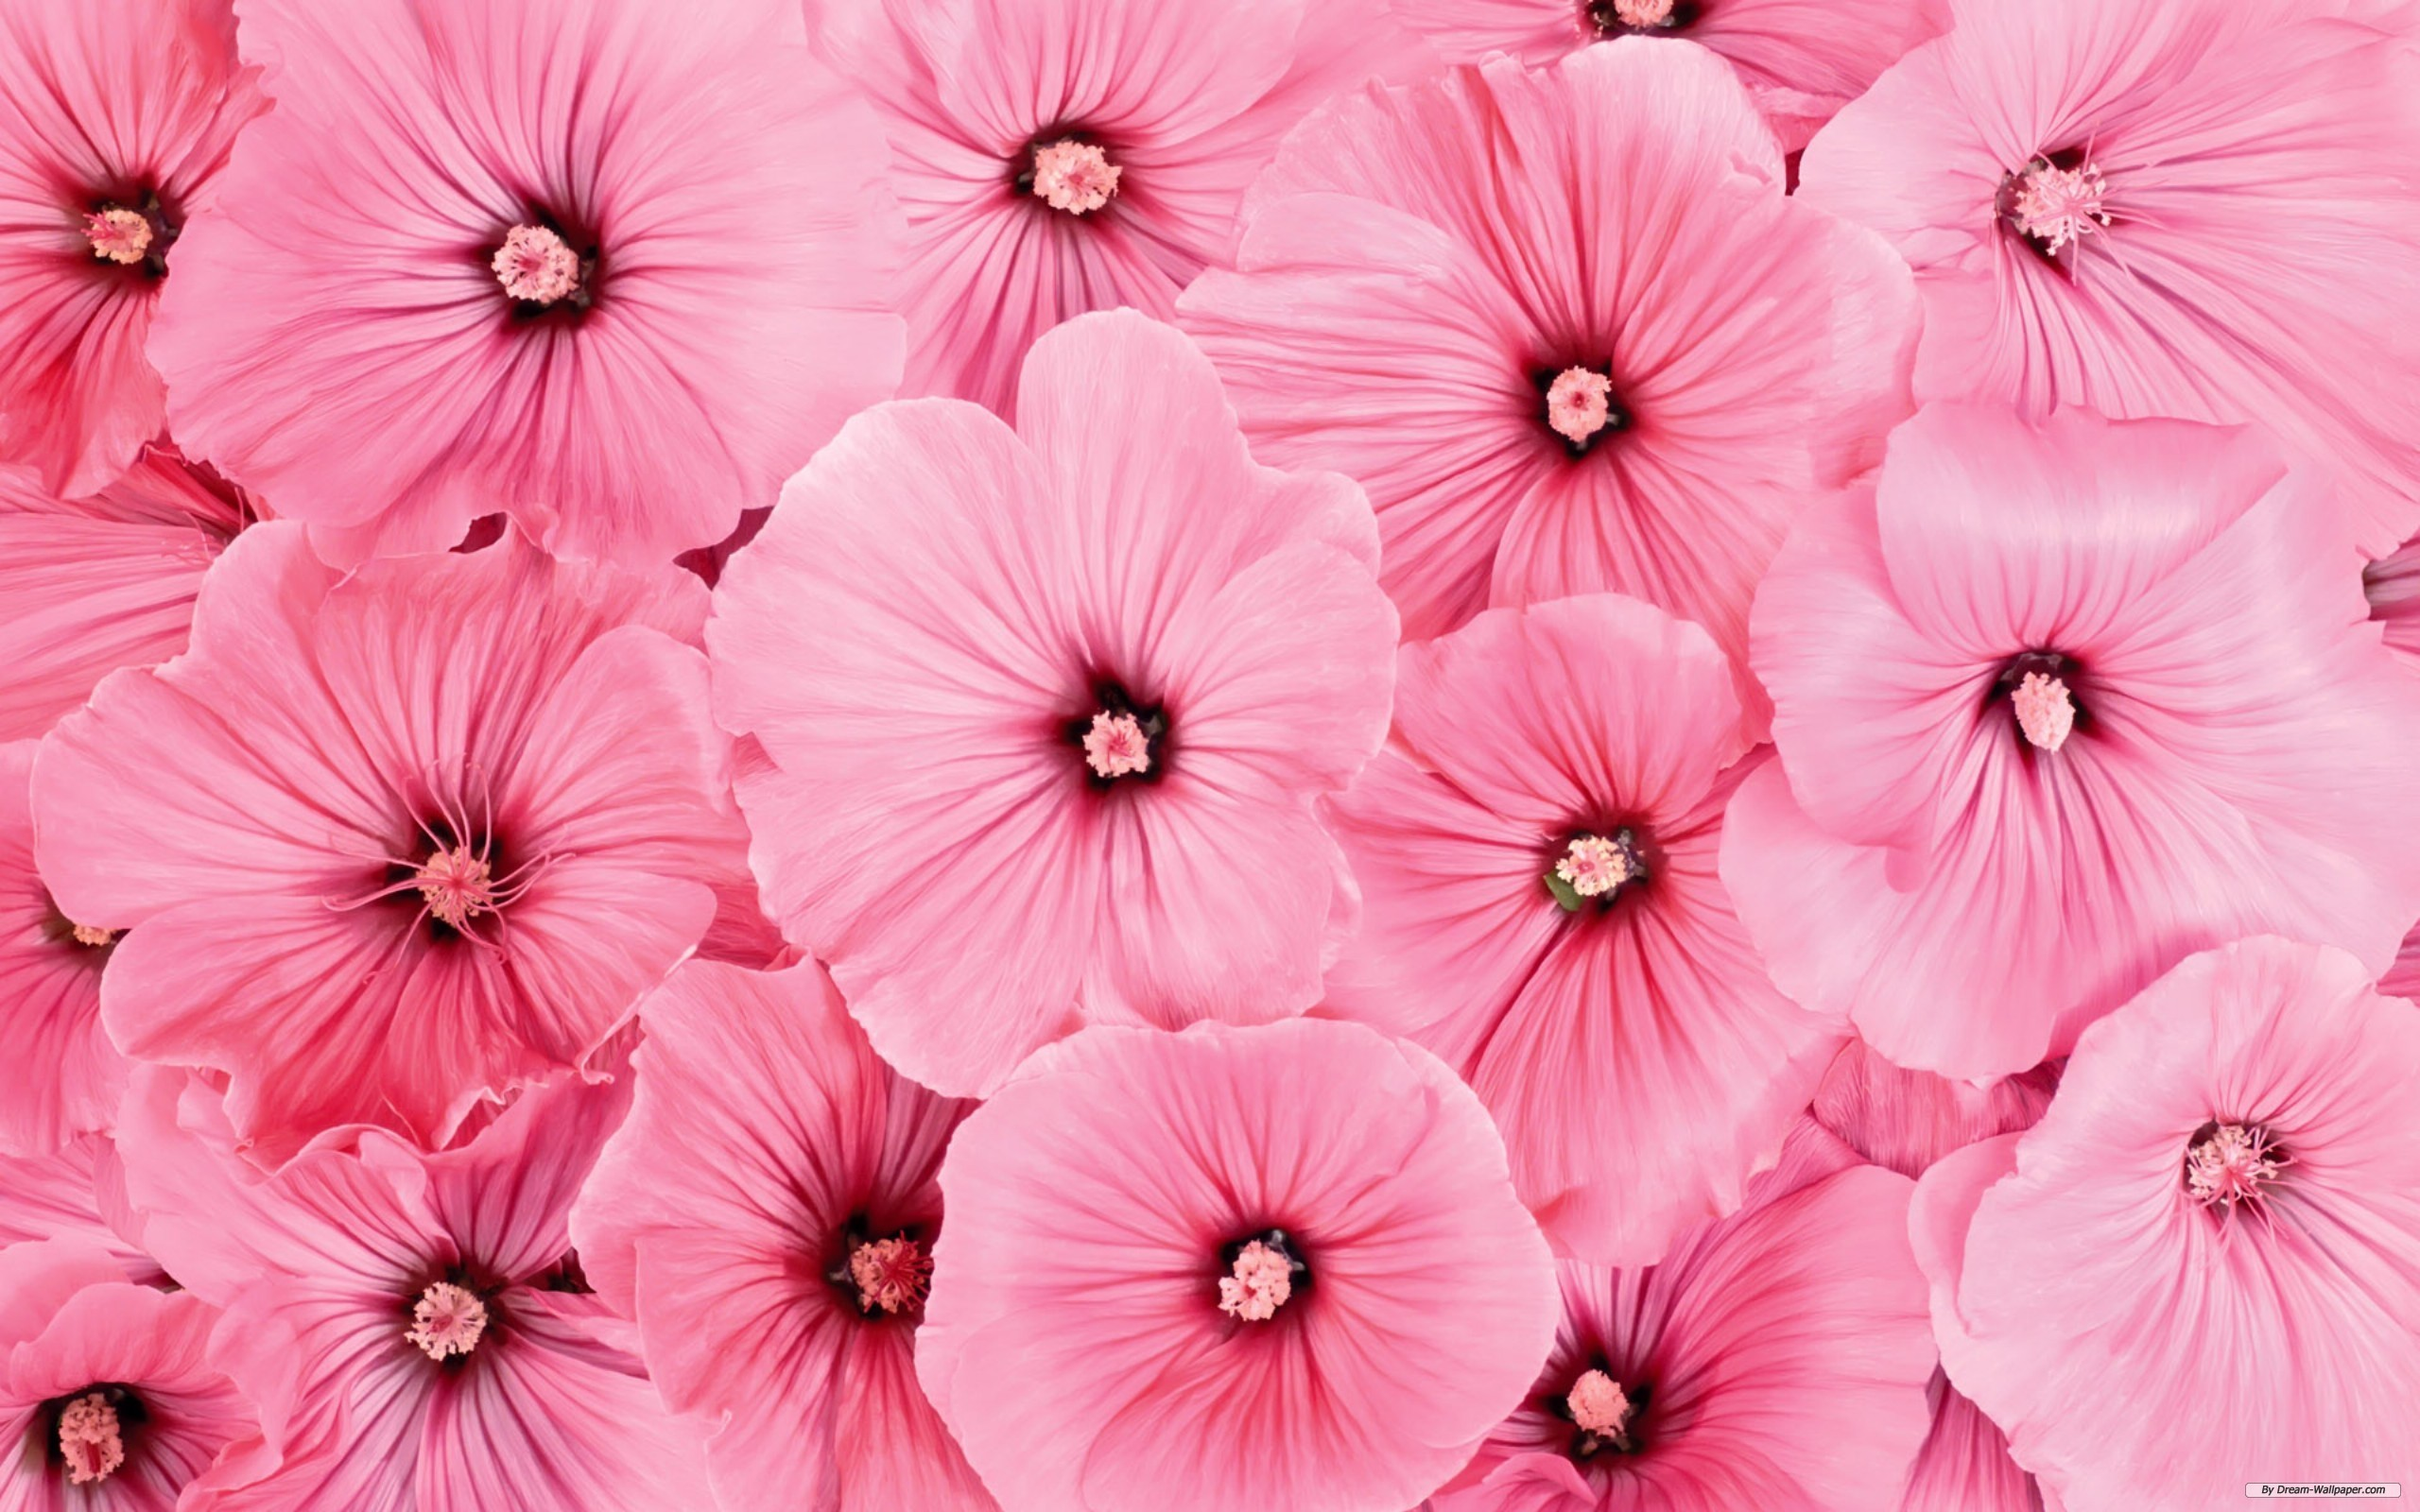 Wallpaper   Flower wallpaper   Beautiful Flower wallpaper 2560x1600